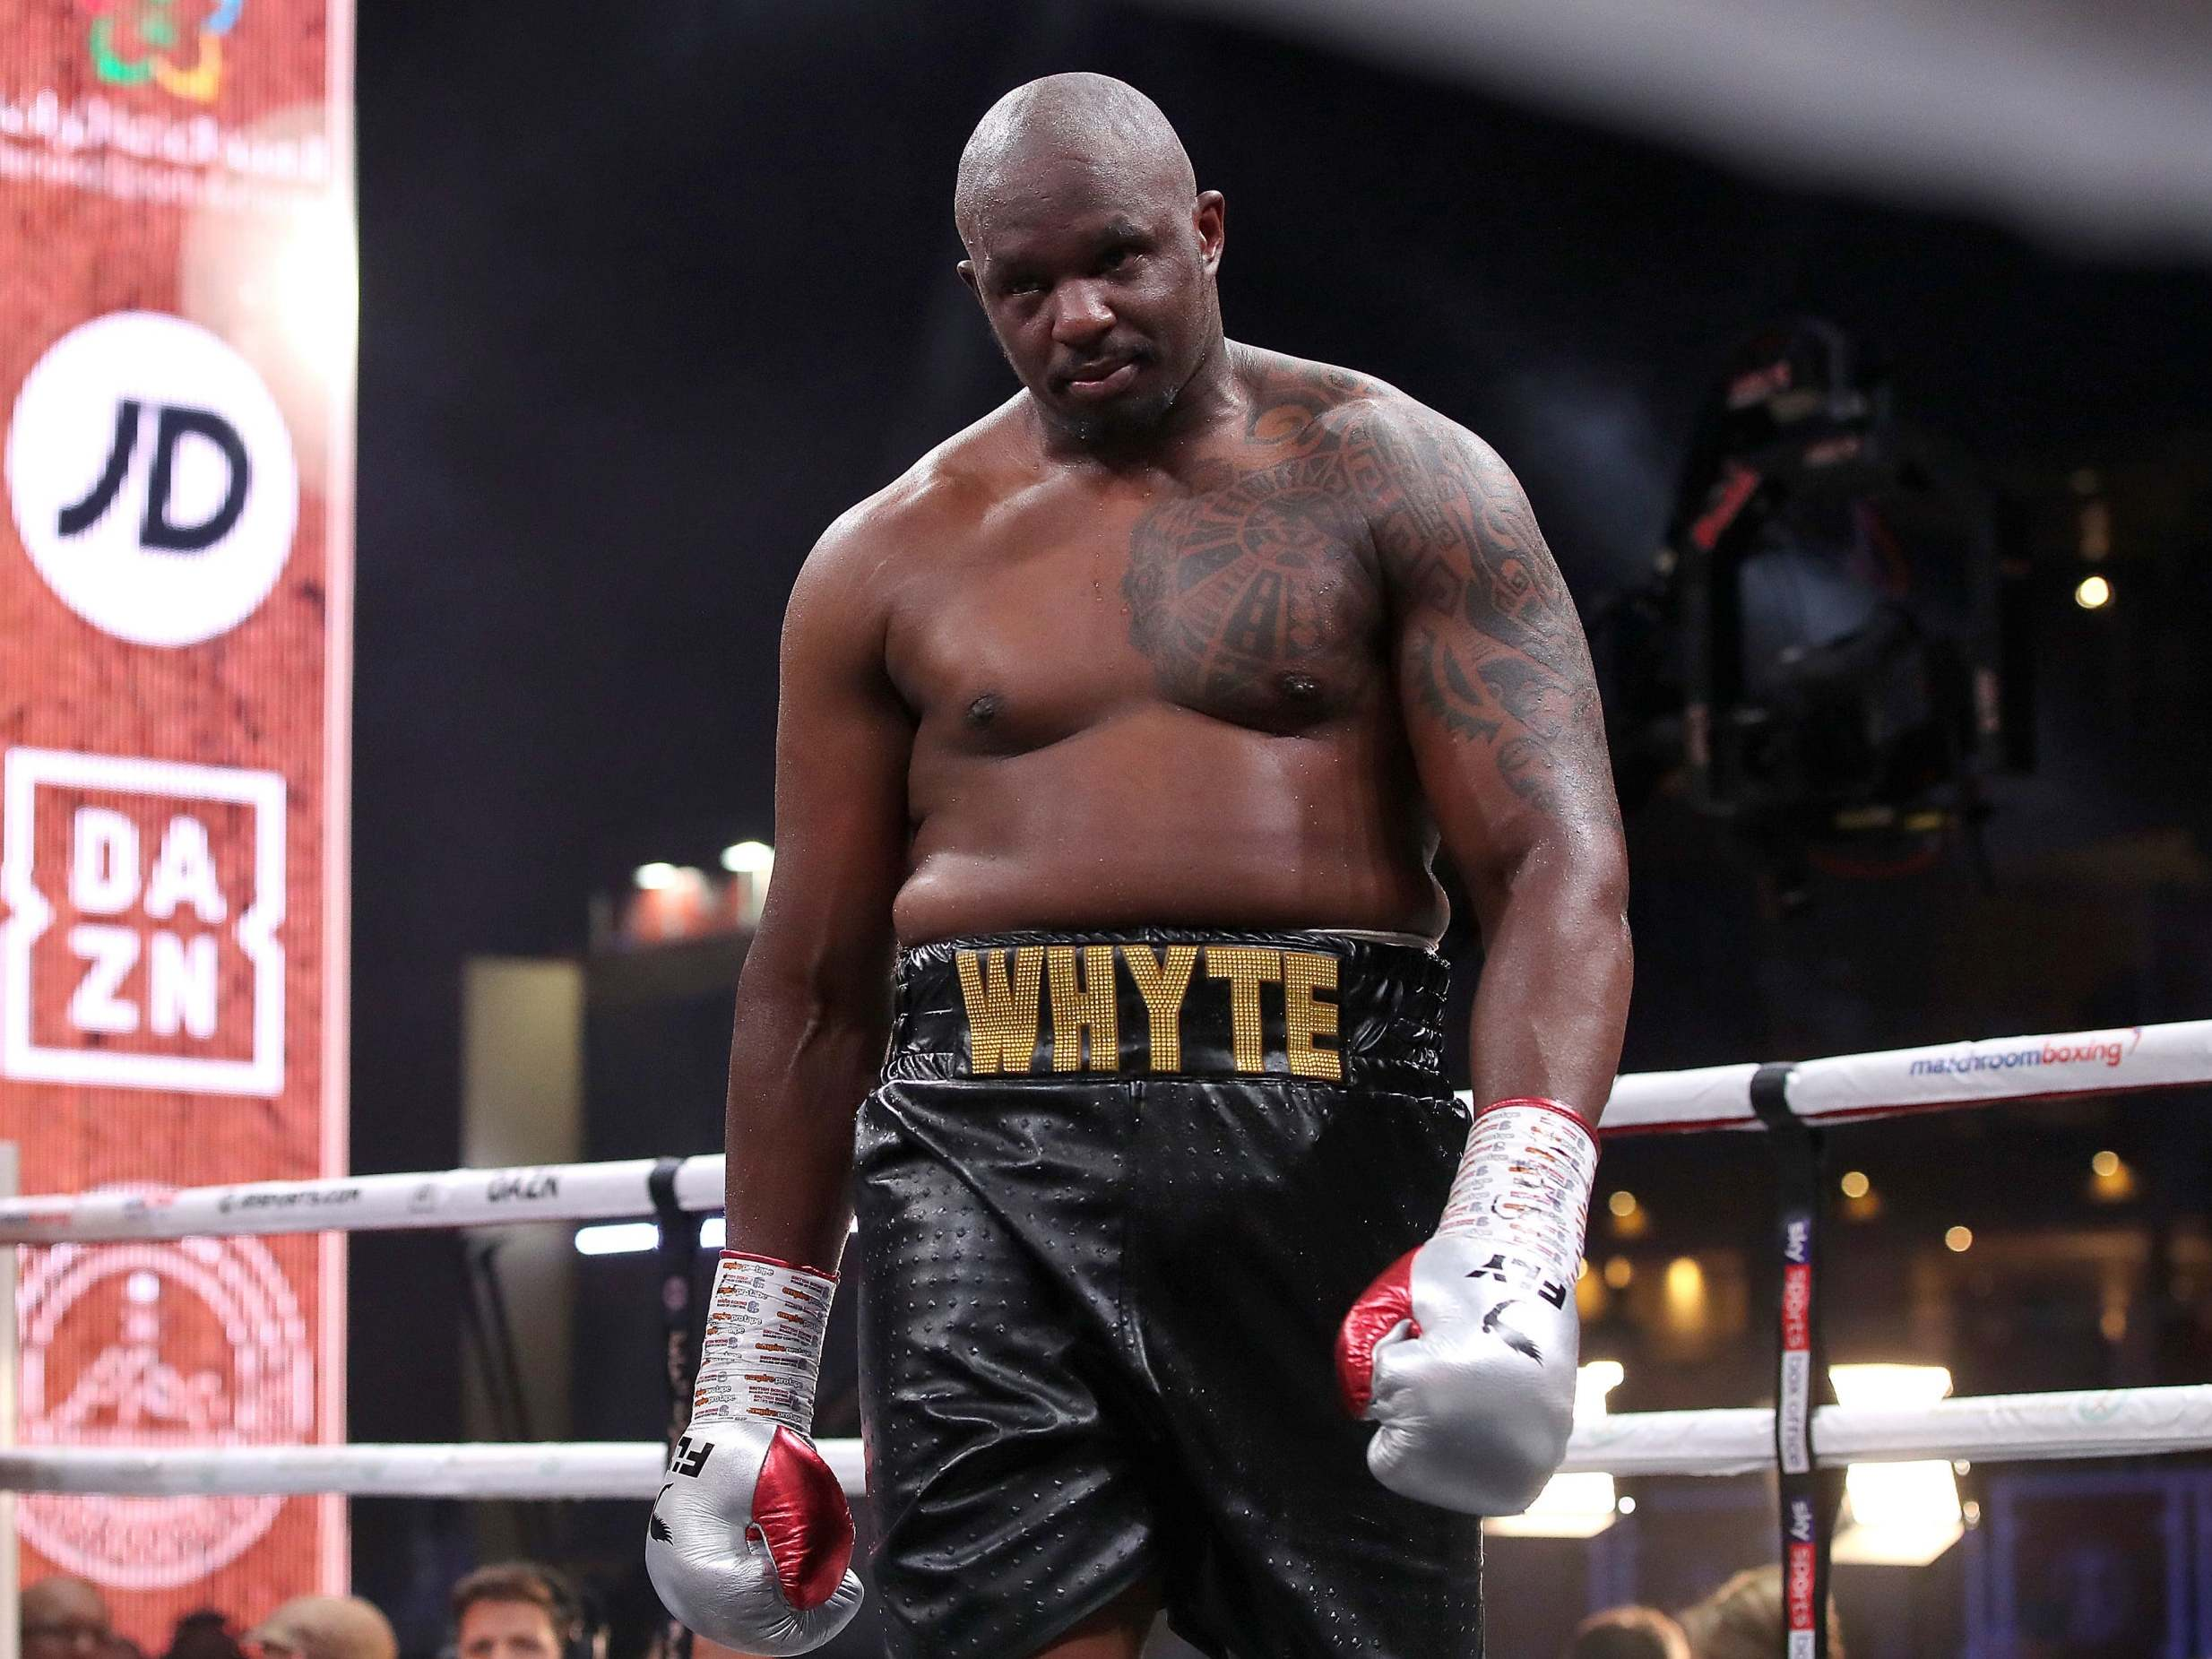 Dillian Whyte labels Andy Ruiz Jr 'Jabba the Hutt' as he weighs up his next fight opponent